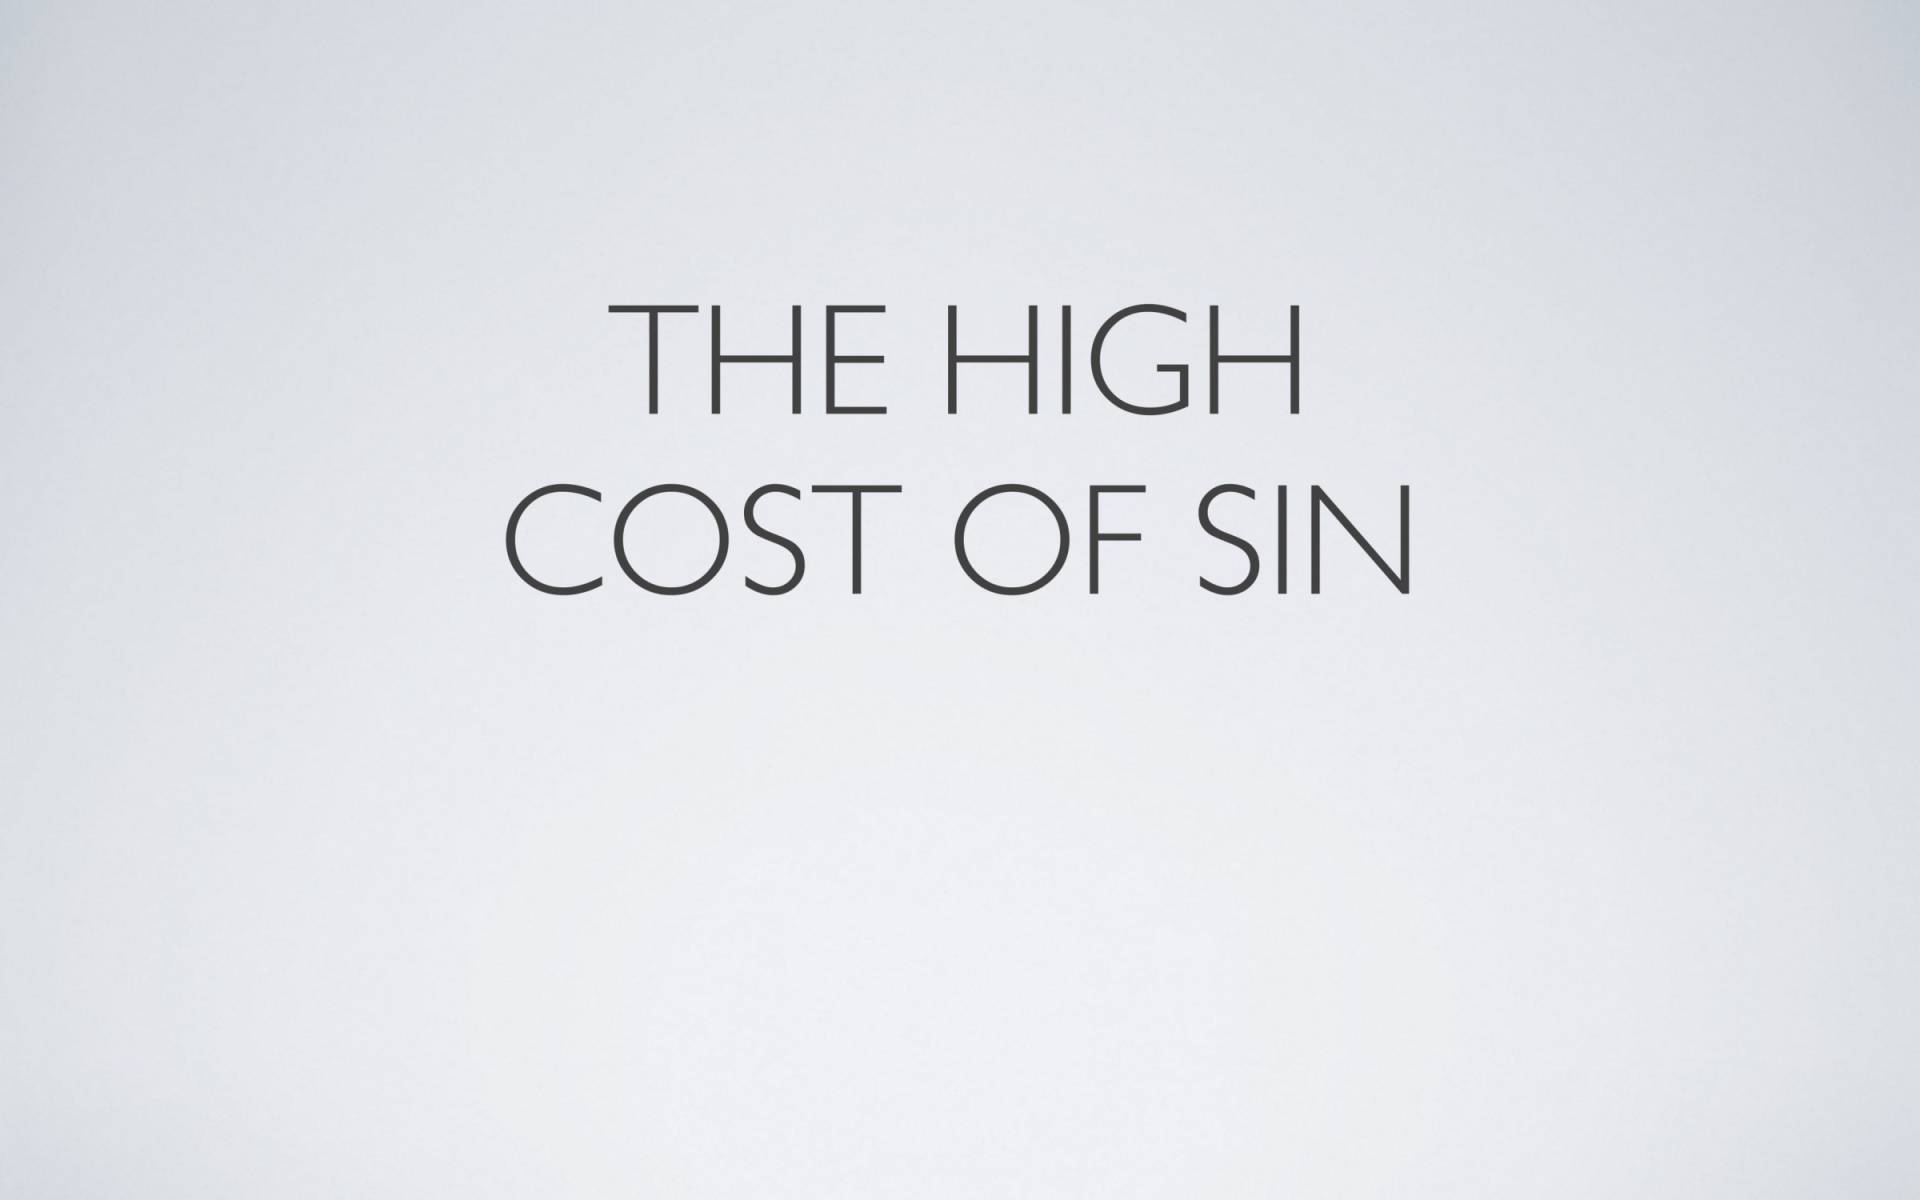 BC&D-16 - Lesson 5-3 - How To Counsel And Disciple People Using The Platform Of Exposure To The Temptation To Sin-11